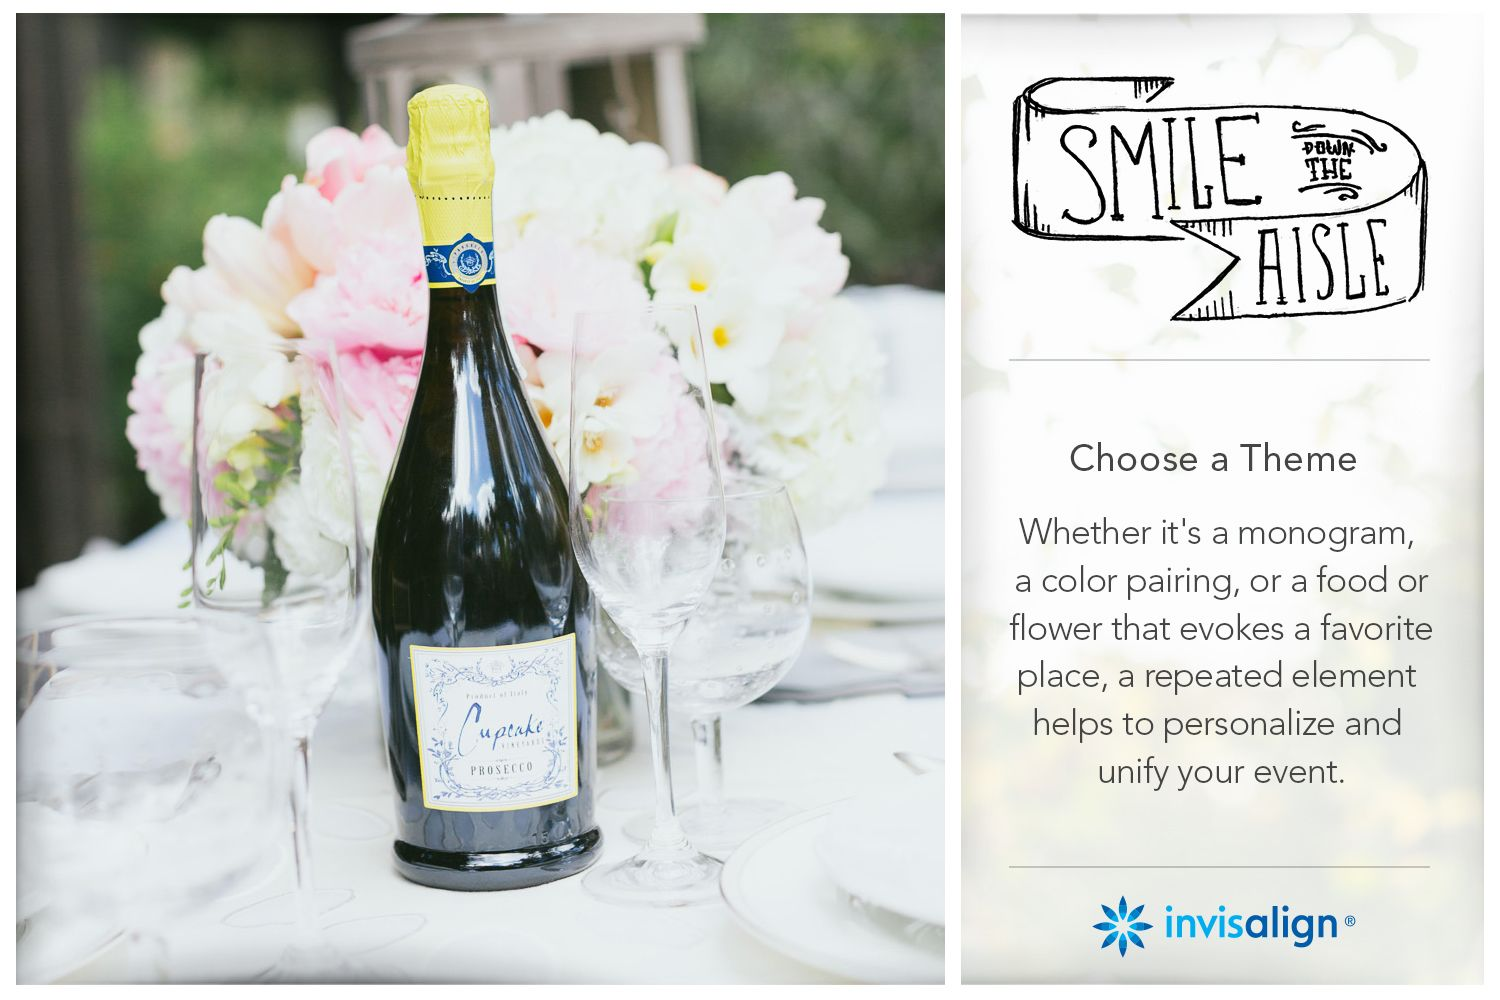 Invisalign Wedding | Smile Down The Aisle | Looking for a unique and budget-friendly centerpiece idea? Think outside the flower vase.